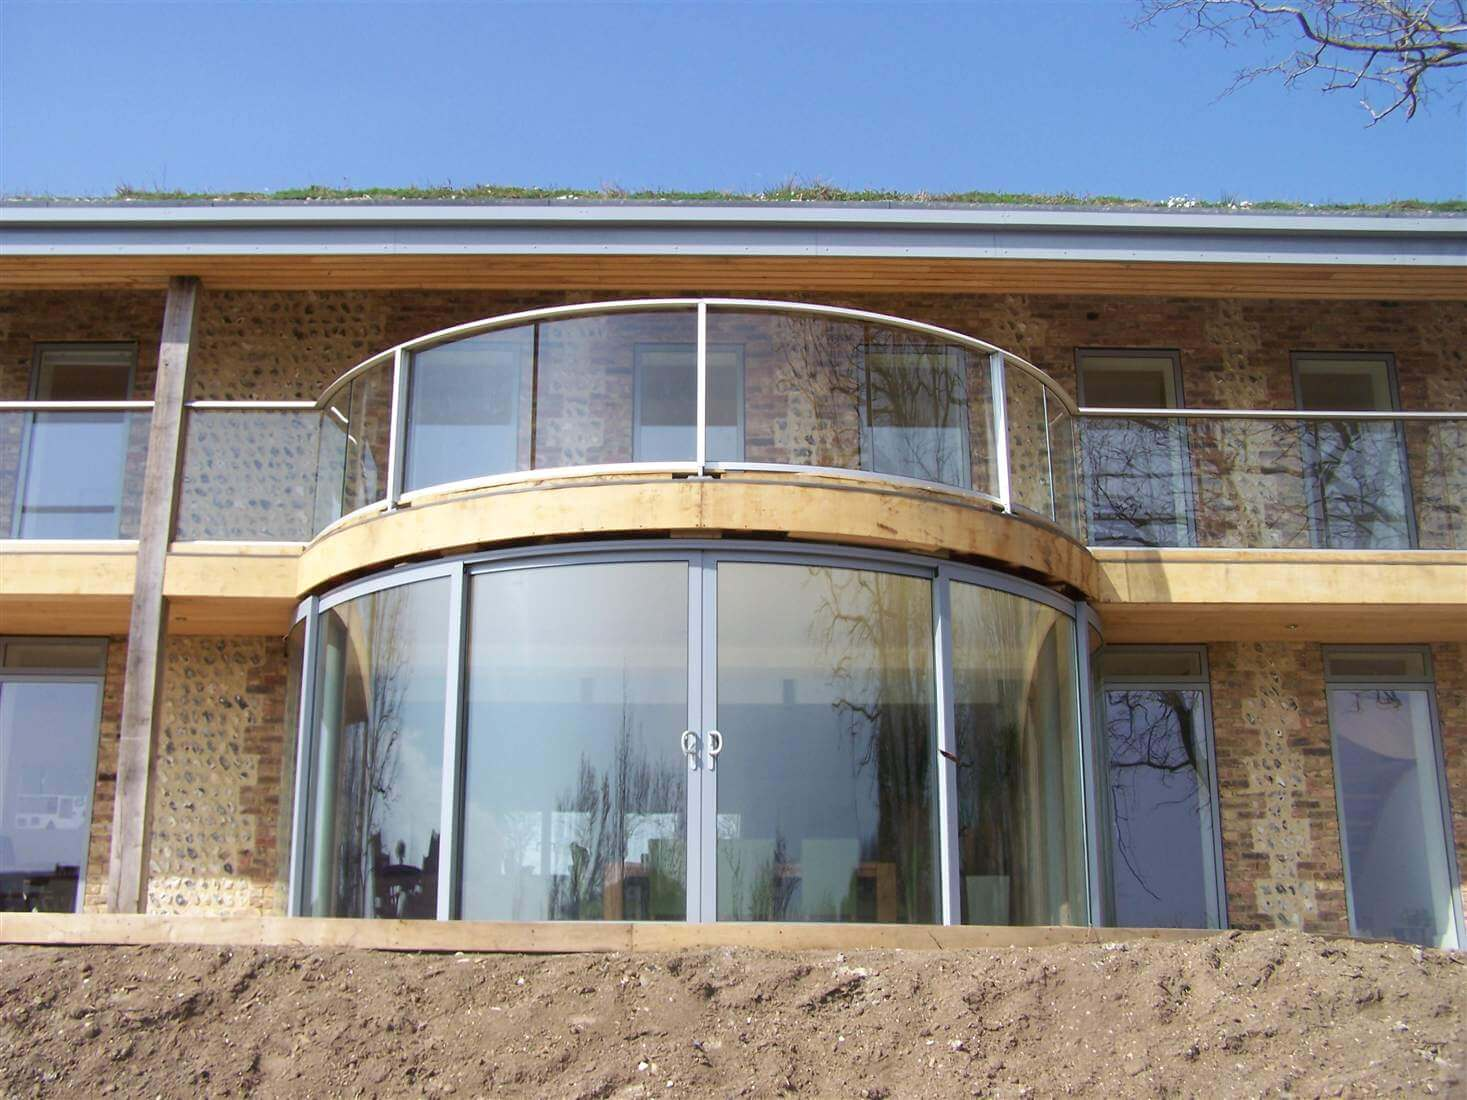 Curved Silver Aerofoil Balustrade With Curved Sliding Doors And Blue Sky